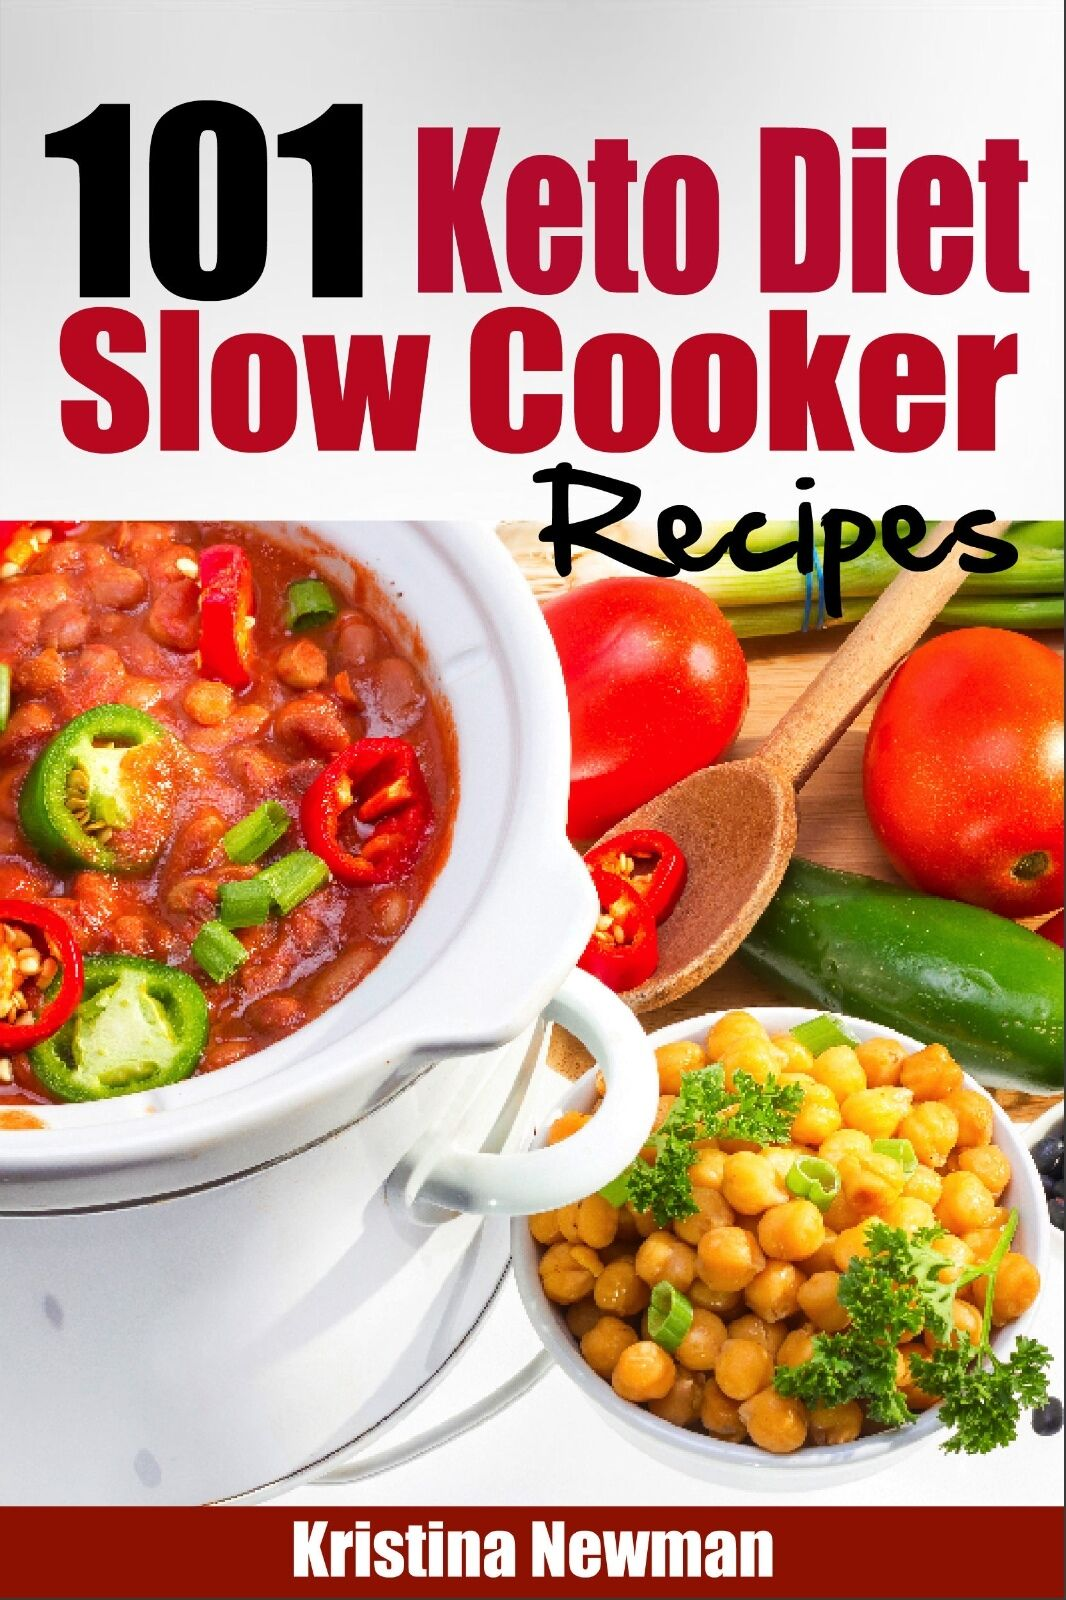 101 Ketogenic Diet Slow Cooker Recipes Quick Easy Low